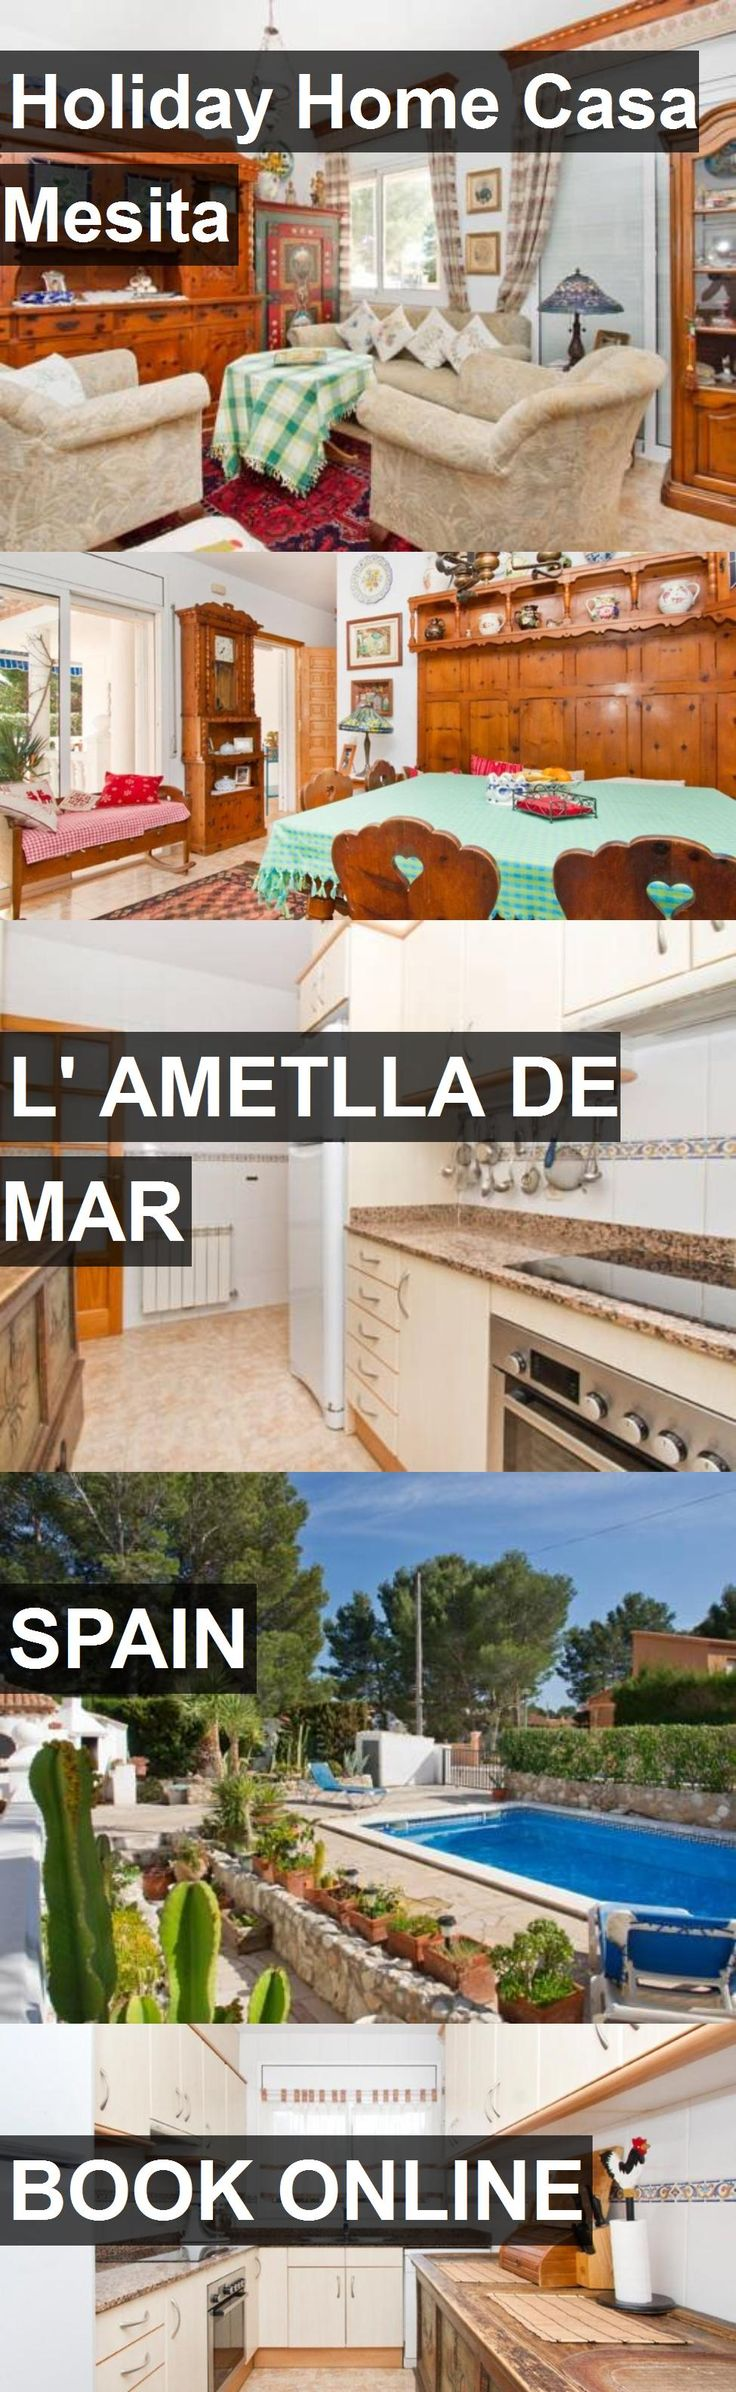 Hotel Holiday Home Casa Mesita in l' Ametlla de Mar, Spain. For more information, photos, reviews and best prices please follow the link. #Spain #l'AmetlladeMar #travel #vacation #hotel